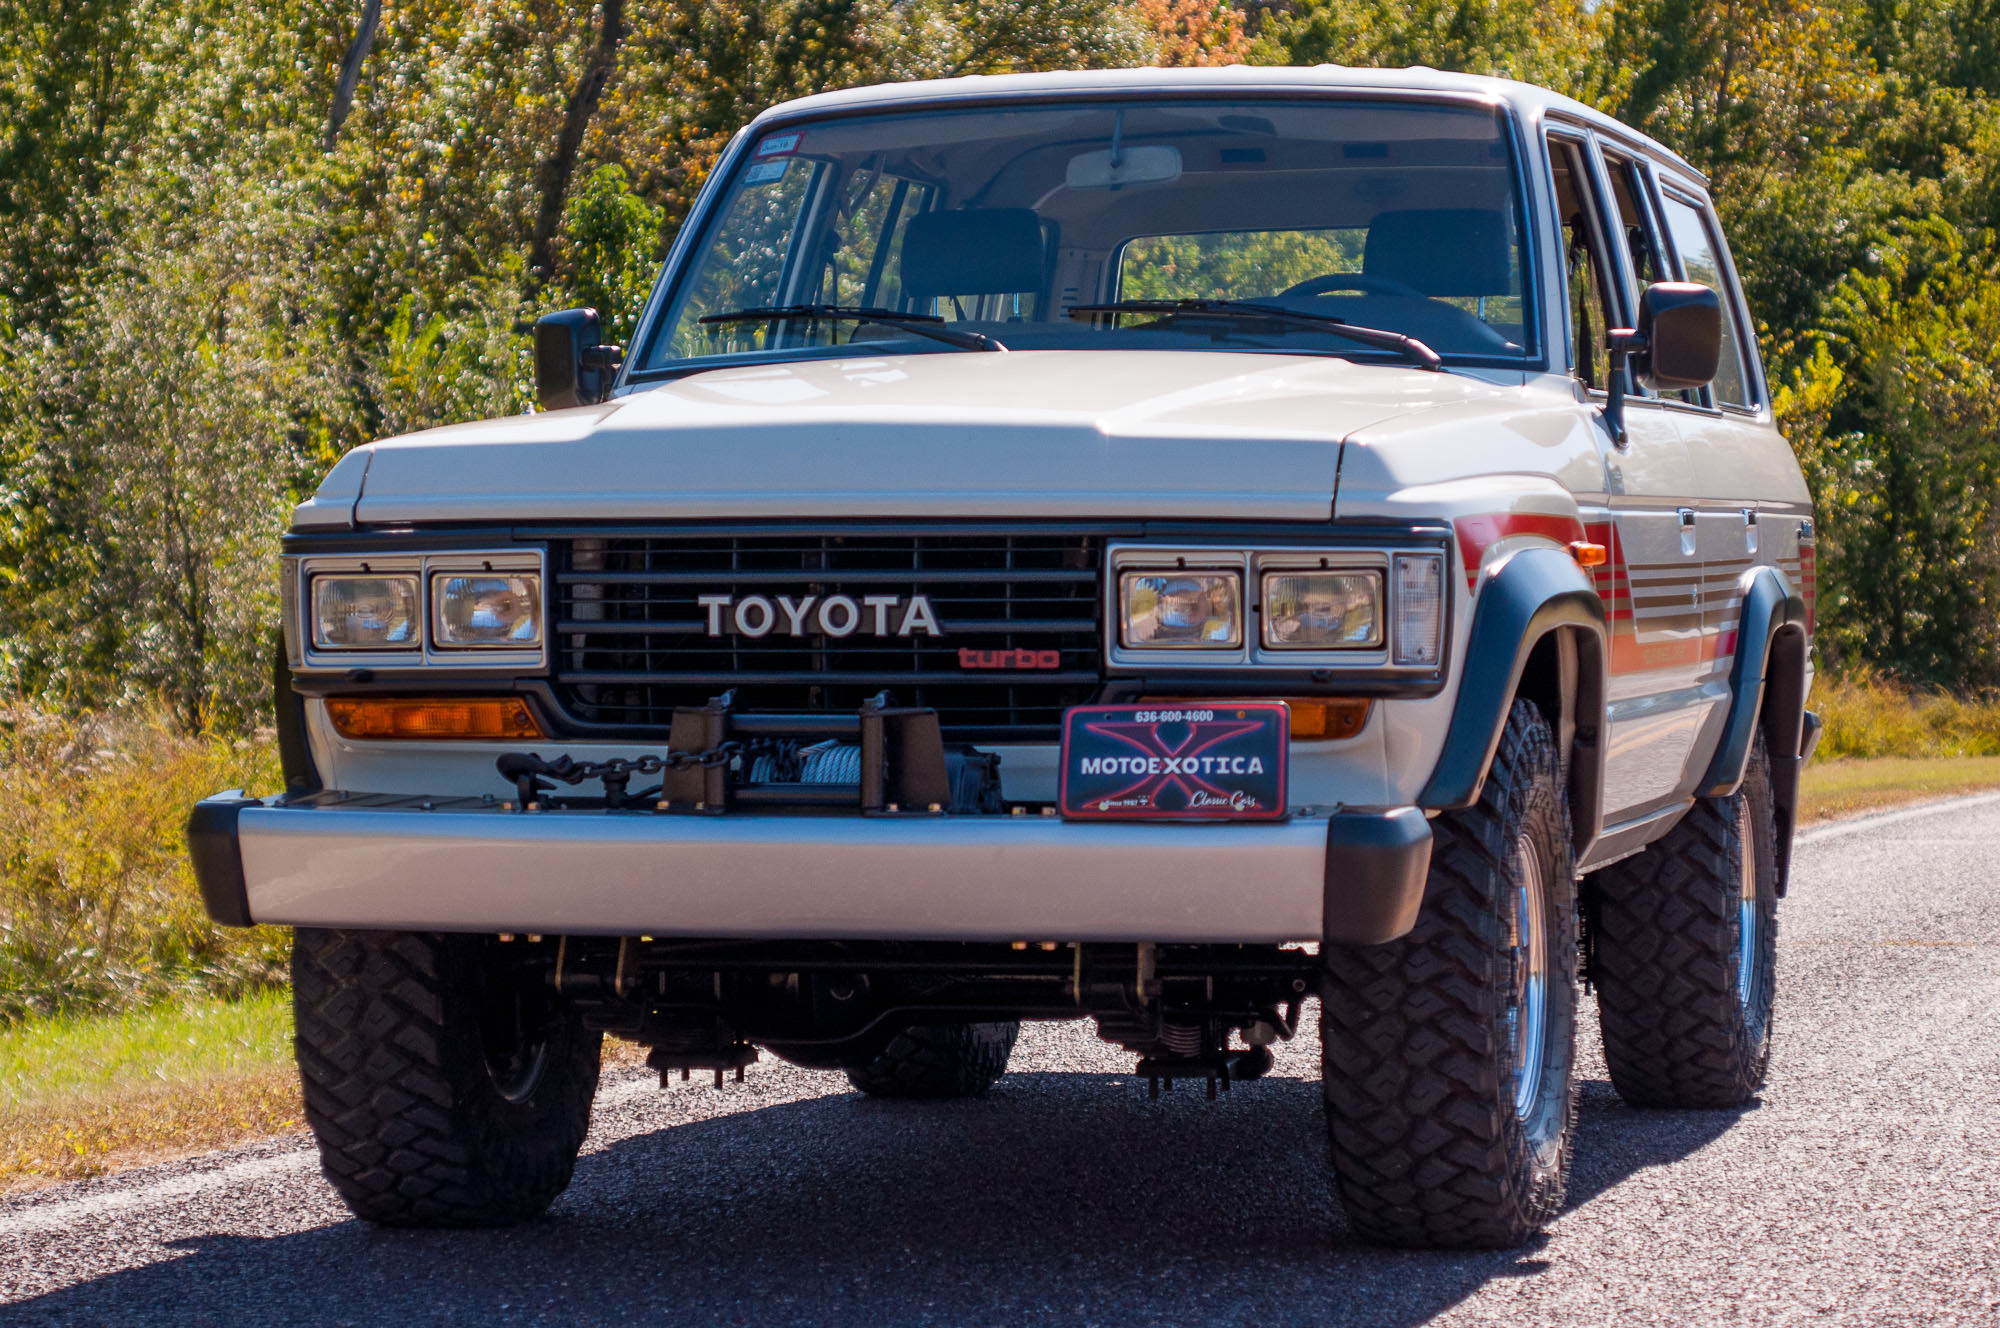 A Time Capsule Condition 1988 Toyota Land Cruiser J60 Gx Hj61 Turbo